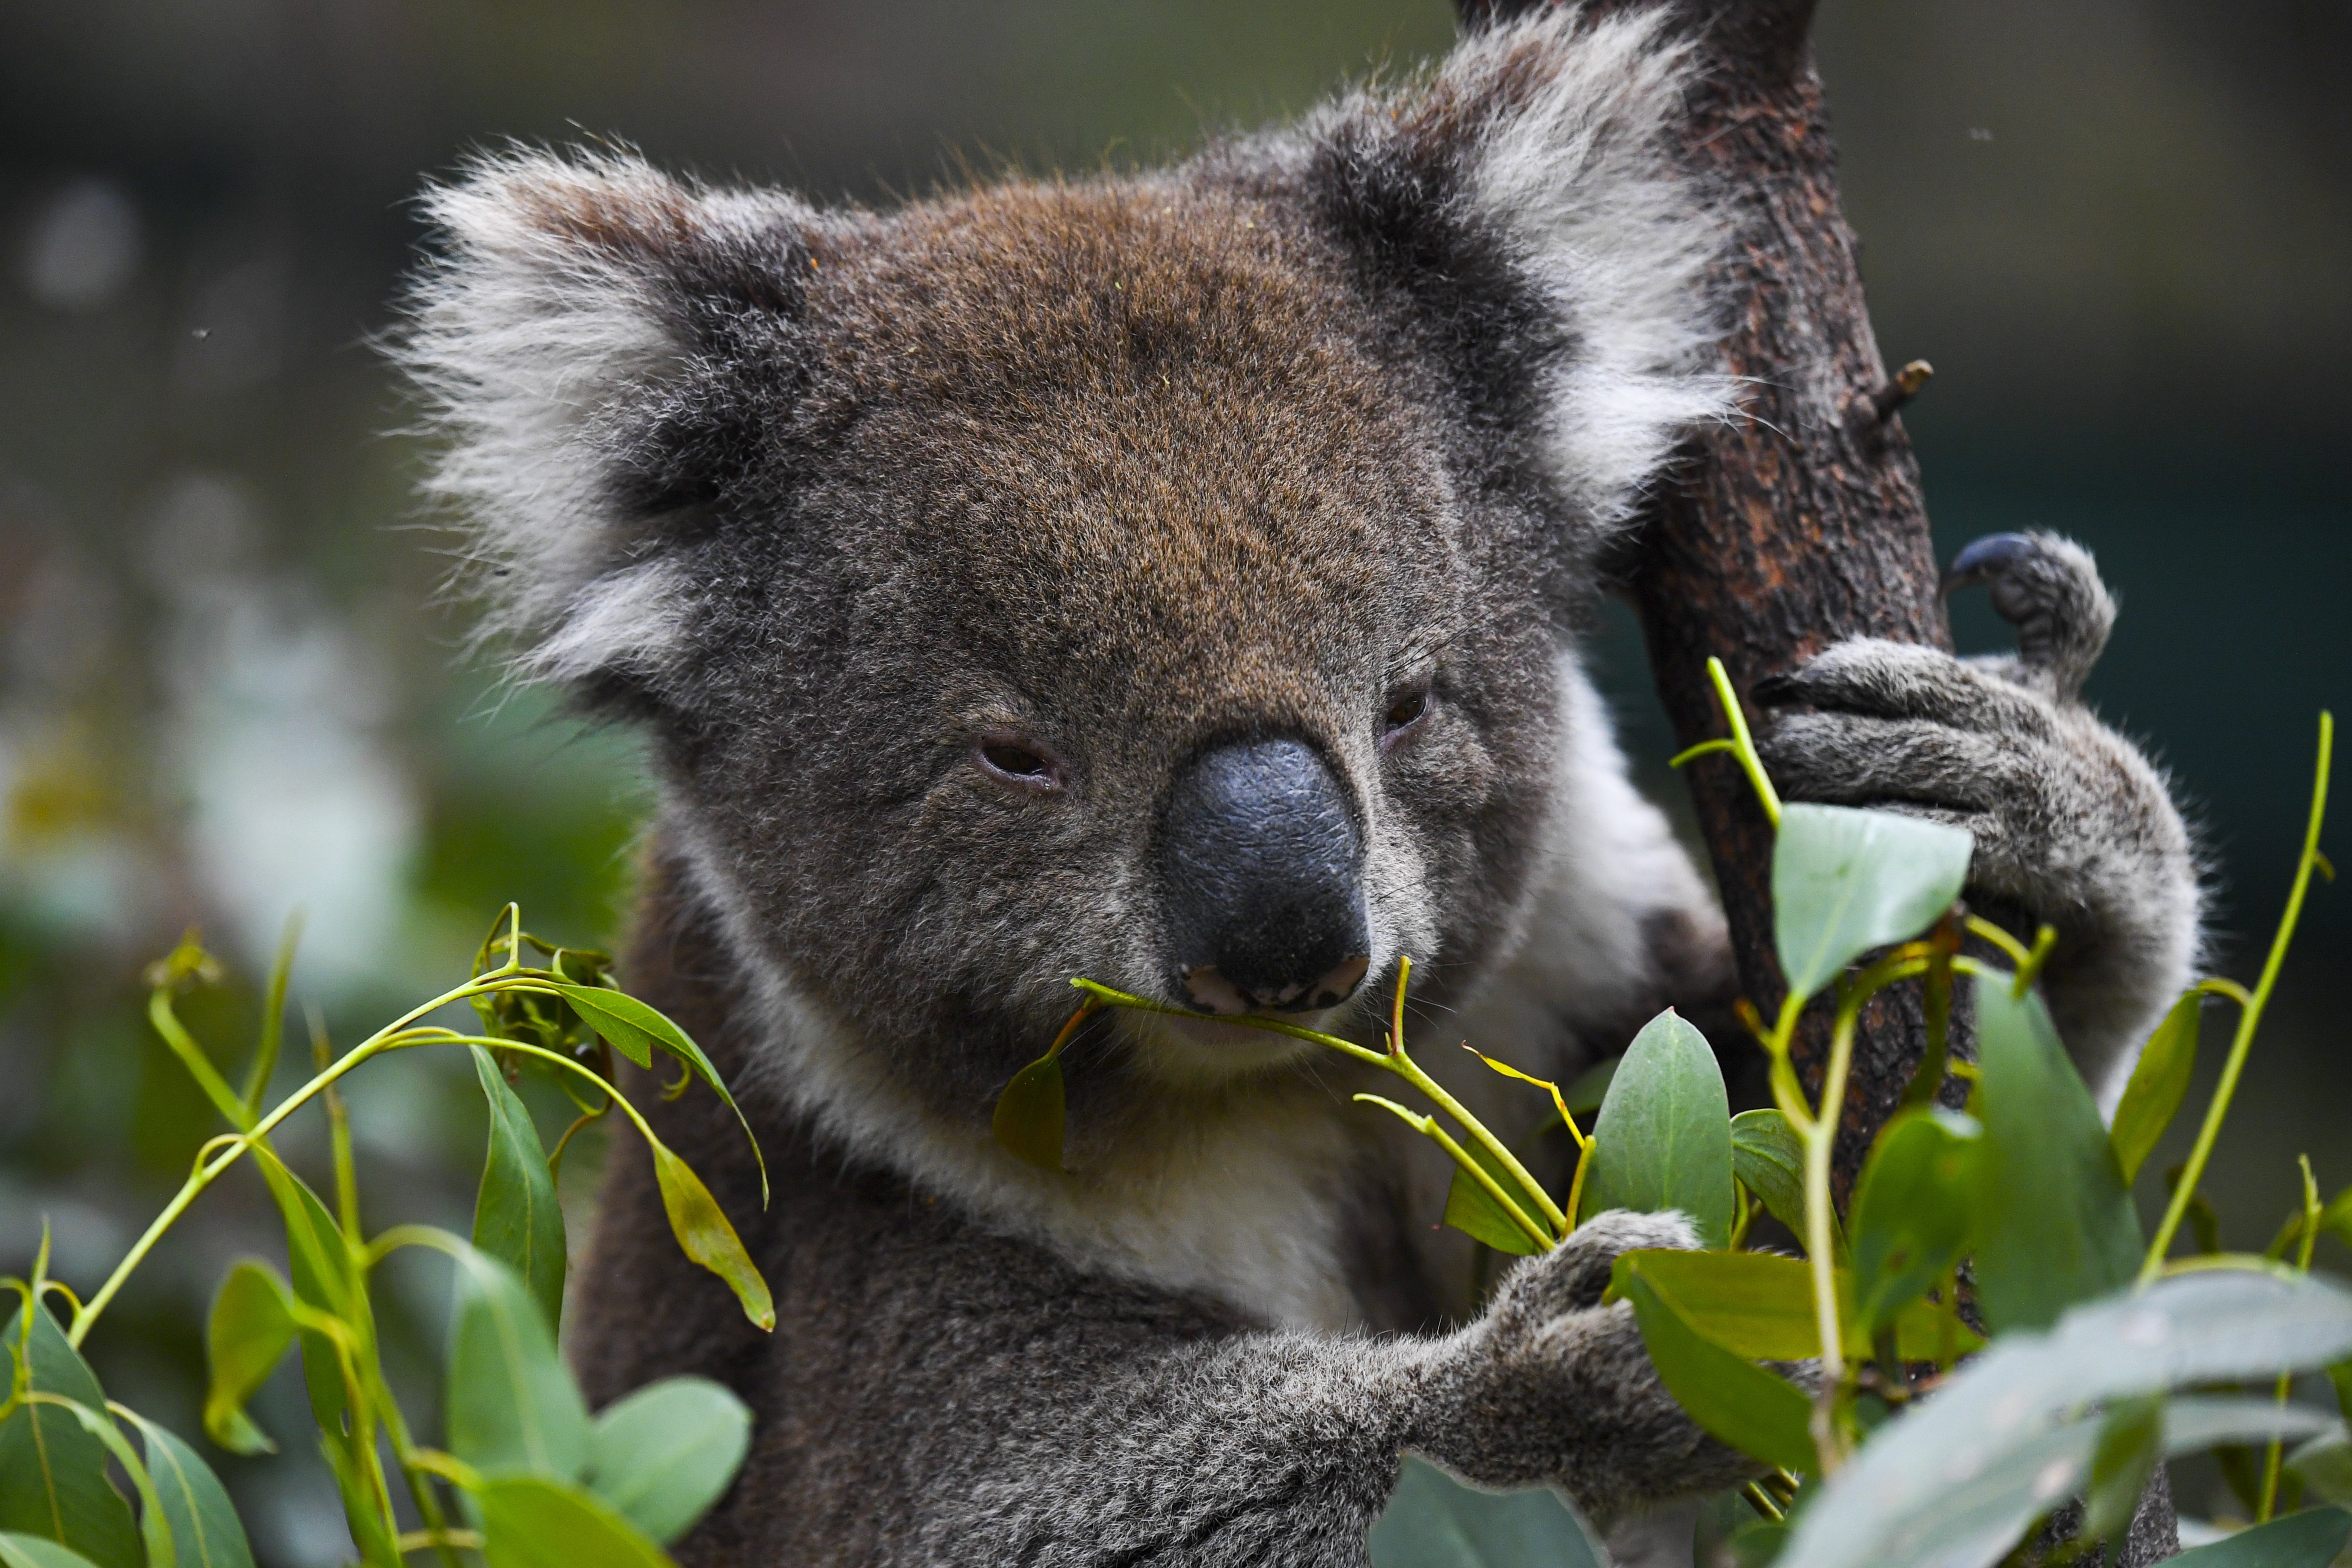 Australia to use drones to count every koala in the country as threat of extinction looms